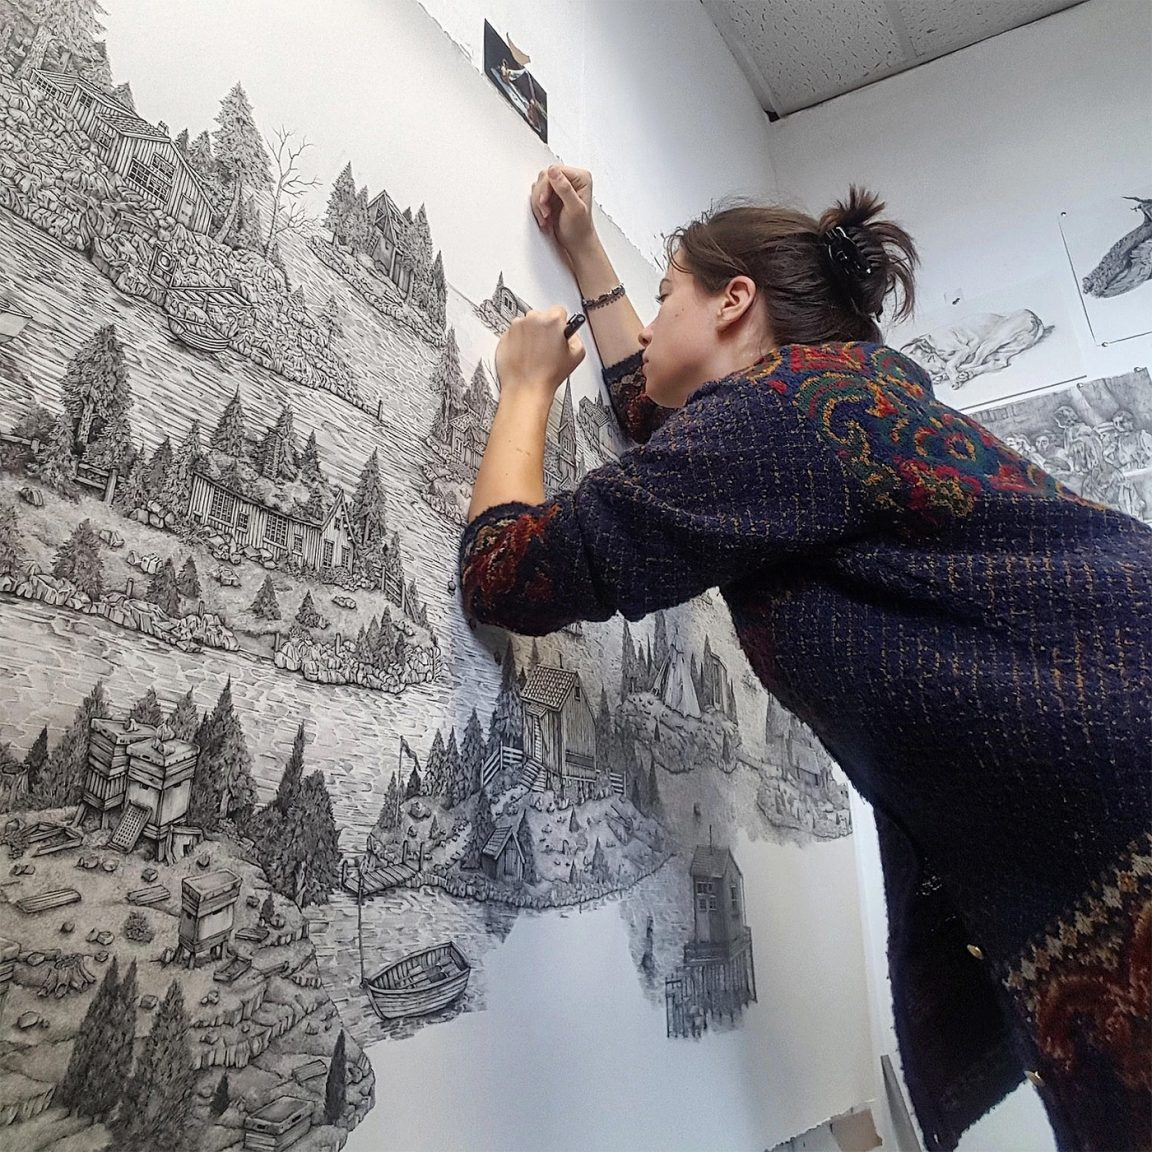 Artist Meticulously Creates Pen And Ink Drawings Of Dreamy